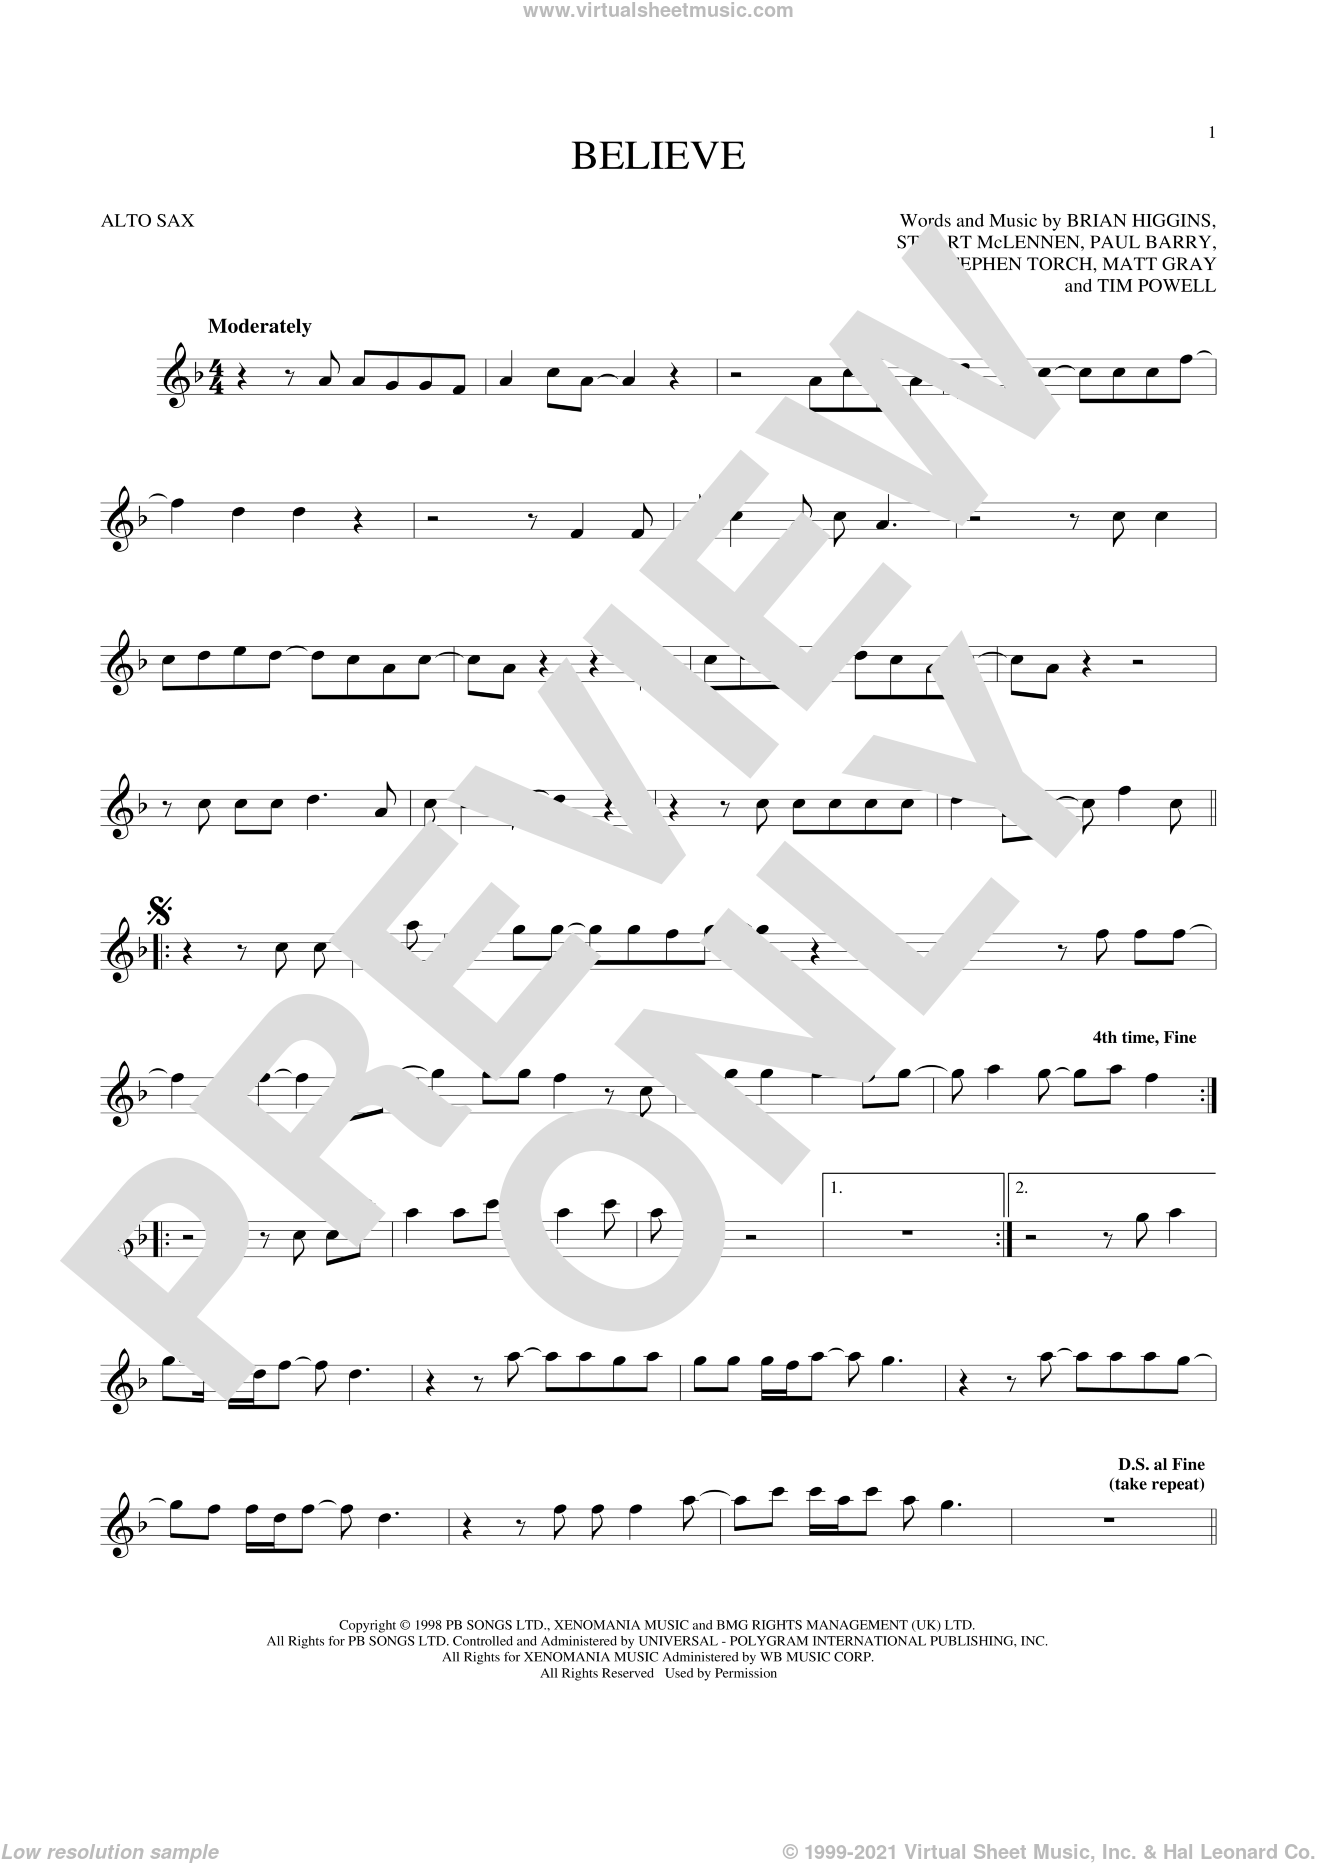 Believe sheet music for alto saxophone solo by Cher, Brian Higgins, Matt Gray, Paul Barry, Stephen Torch, Stuart McLennen and Timothy Powell, intermediate skill level